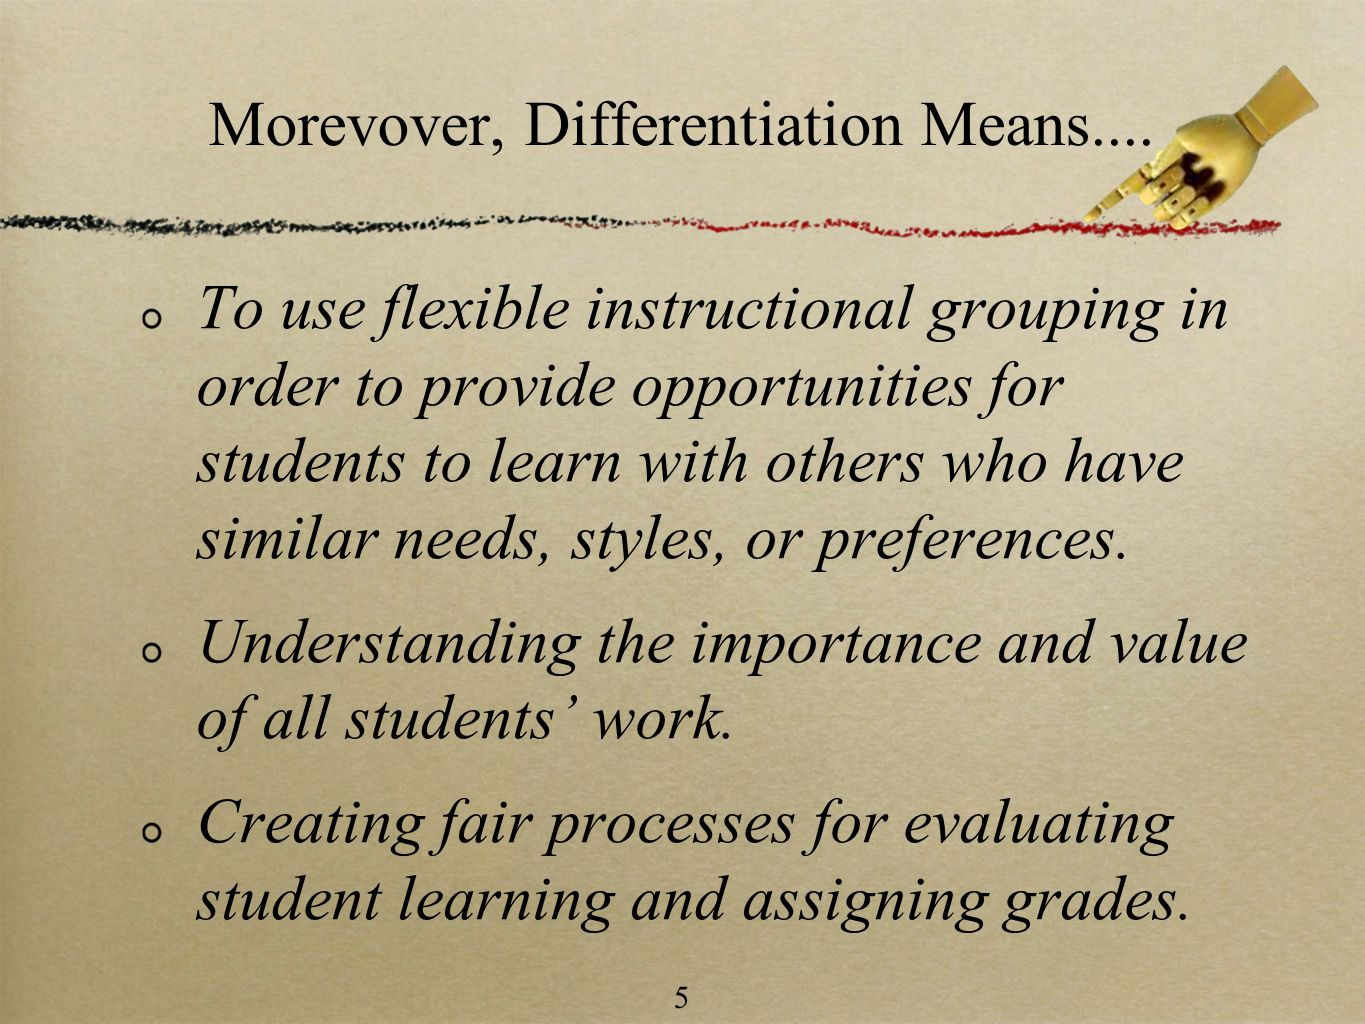 Morevover, Differentiation Means....